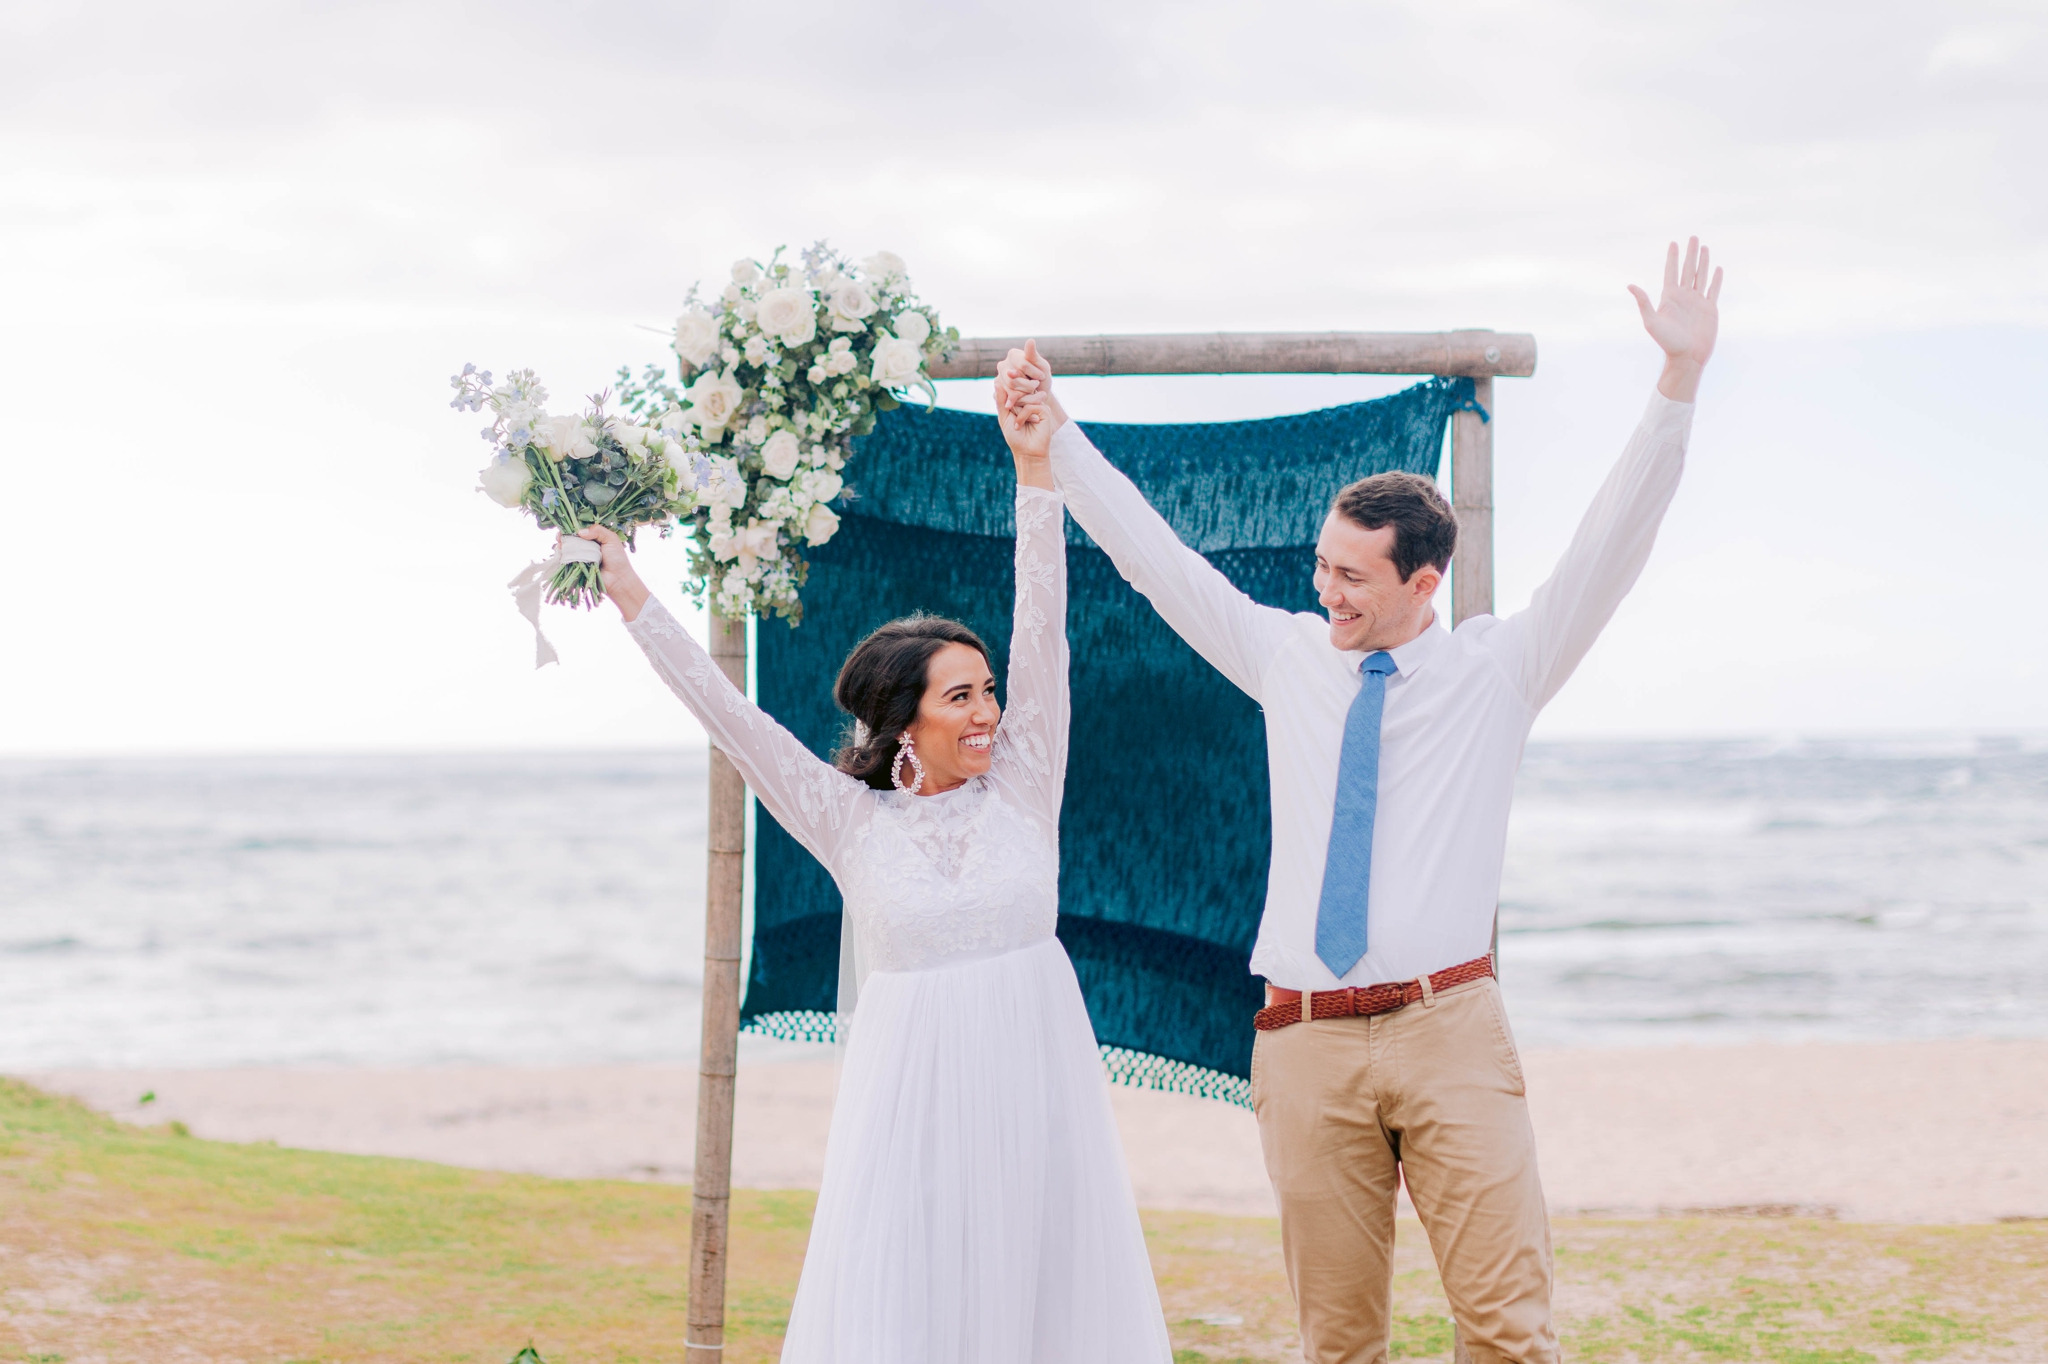 Bride and Groom cheering at the ceremony at the beach - Ana + Elijah - Wedding at Loulu Palm in Haleiwa, HI - Oahu Hawaii Wedding Photographer